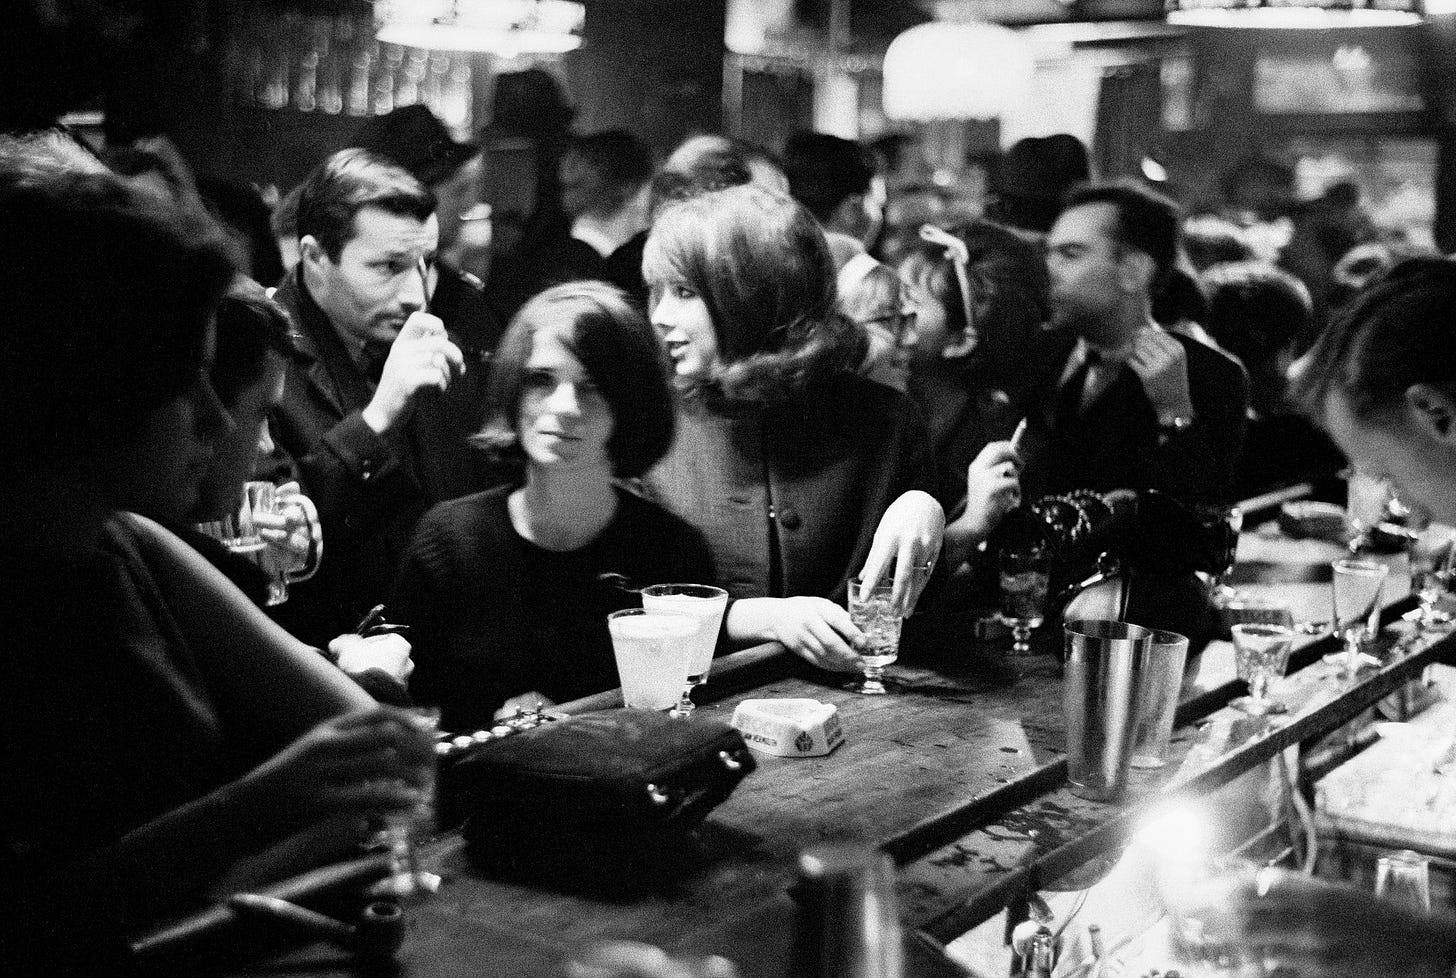 Looking Back on 100 Years of New York City Drinking Culture, From Gritty to  Elegant - The New York Times